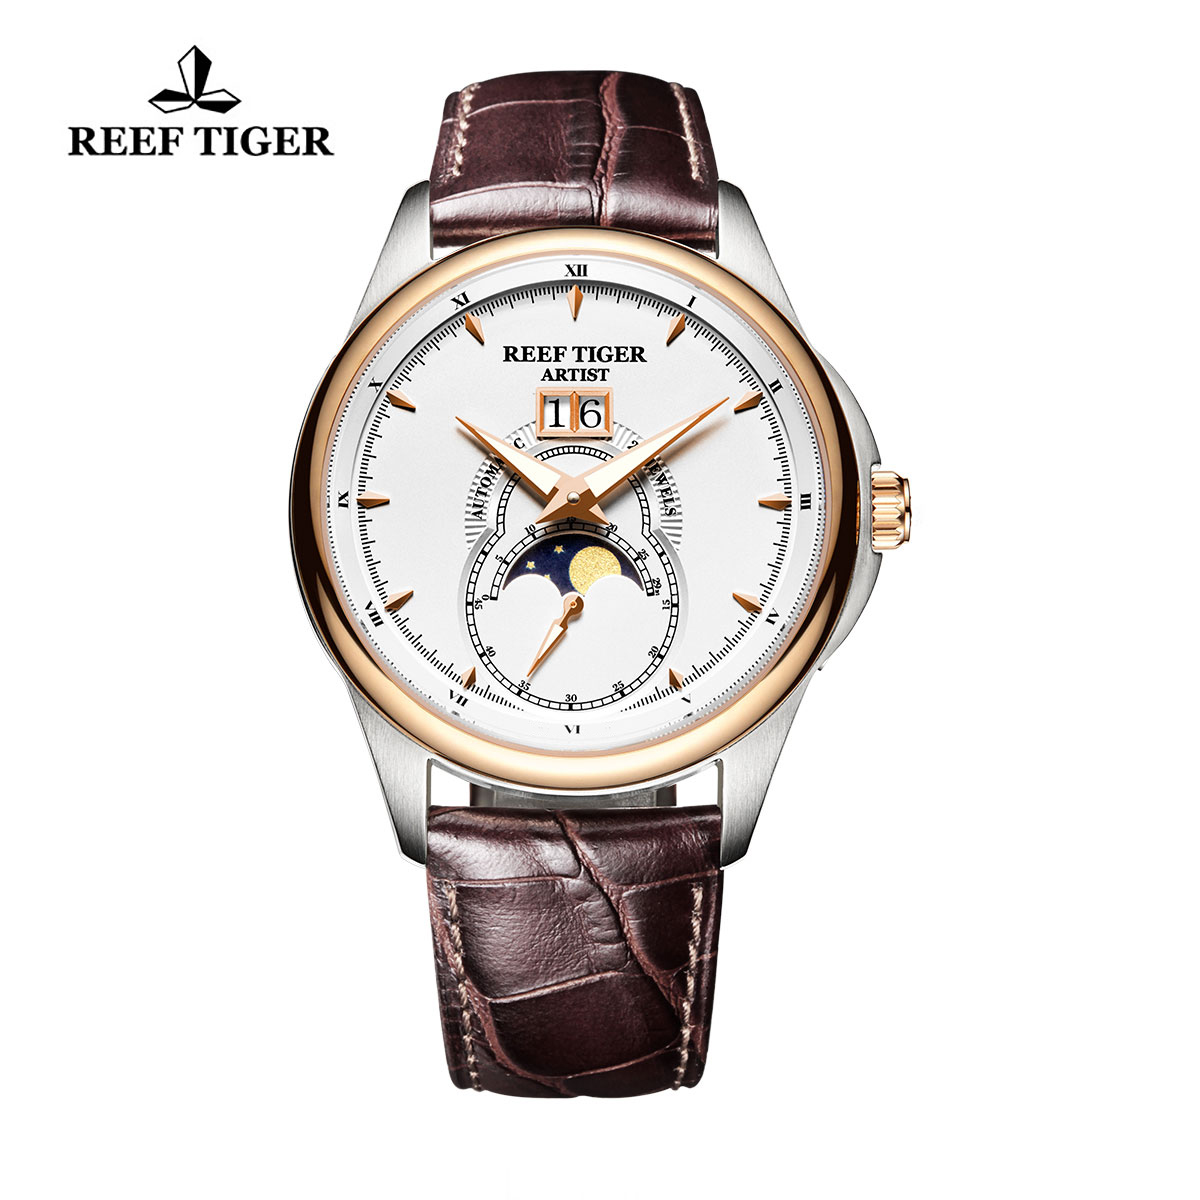 Reef Tiger Knighthood Casual Watch with Dual Calendar White Dial Calfskin Leather RGA1928-PWB